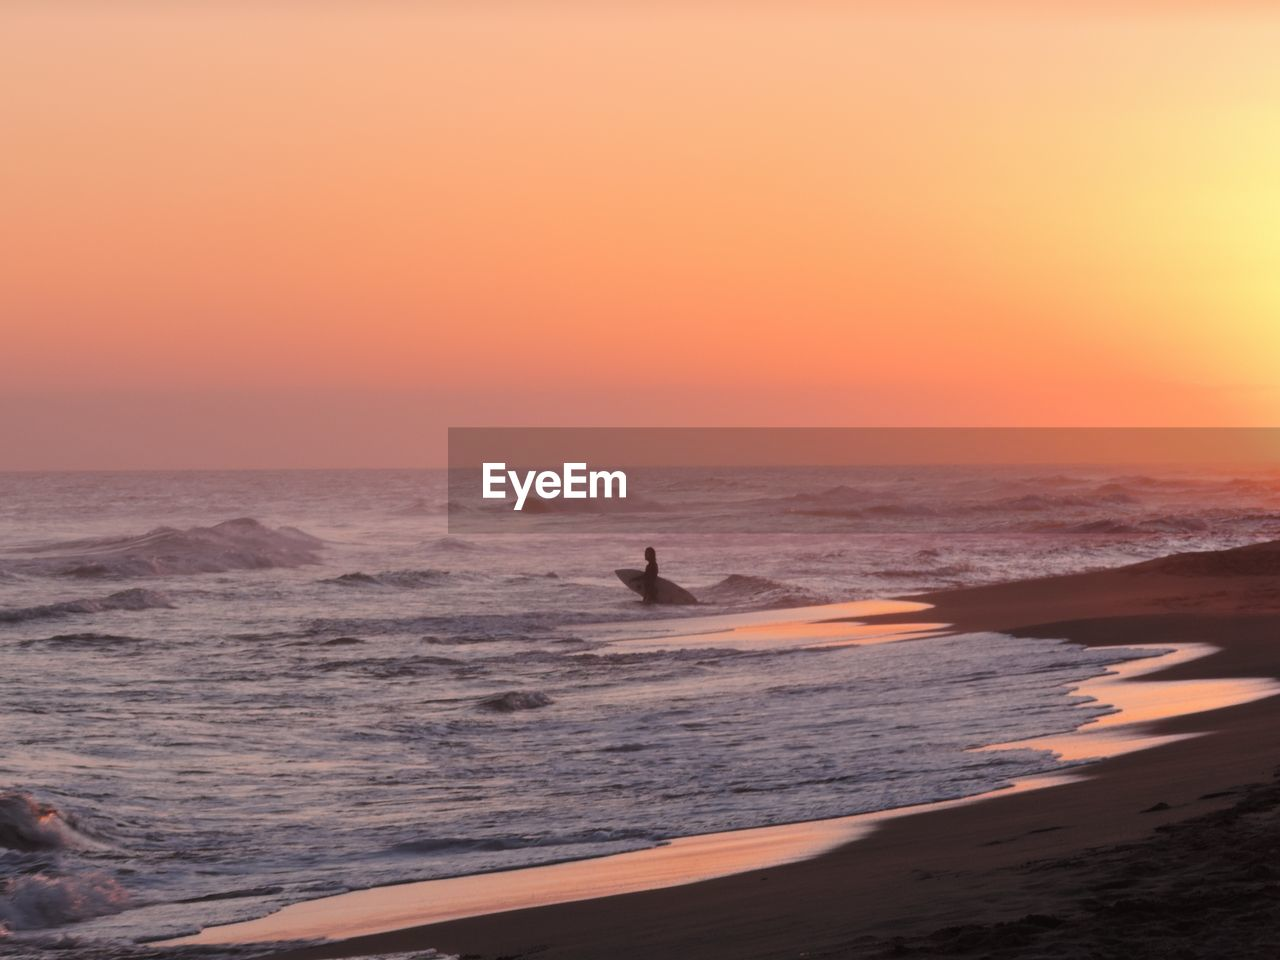 sunset, sky, sea, water, horizon over water, orange color, horizon, scenics - nature, beauty in nature, beach, land, motion, real people, wave, nature, lifestyles, aquatic sport, sport, leisure activity, outdoors